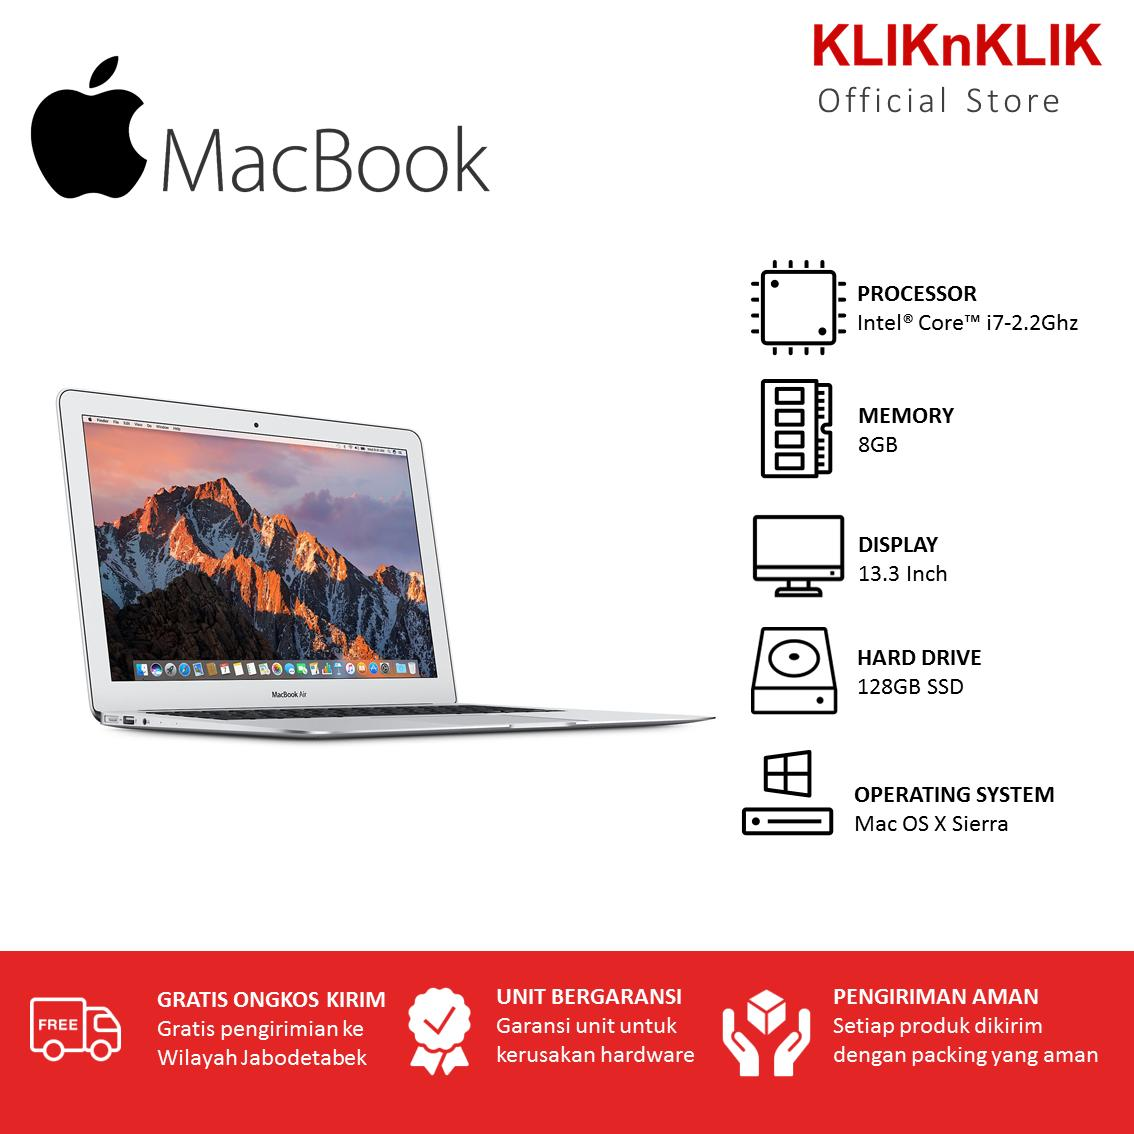 APPLE MacBook Air 13 MQD32 - RAM 8GB - i7-1.6Ghz - 128GB SSD - 13.3 Inch - OS X Sierra - Garansi Internasional -  Laptop Macbook Murah